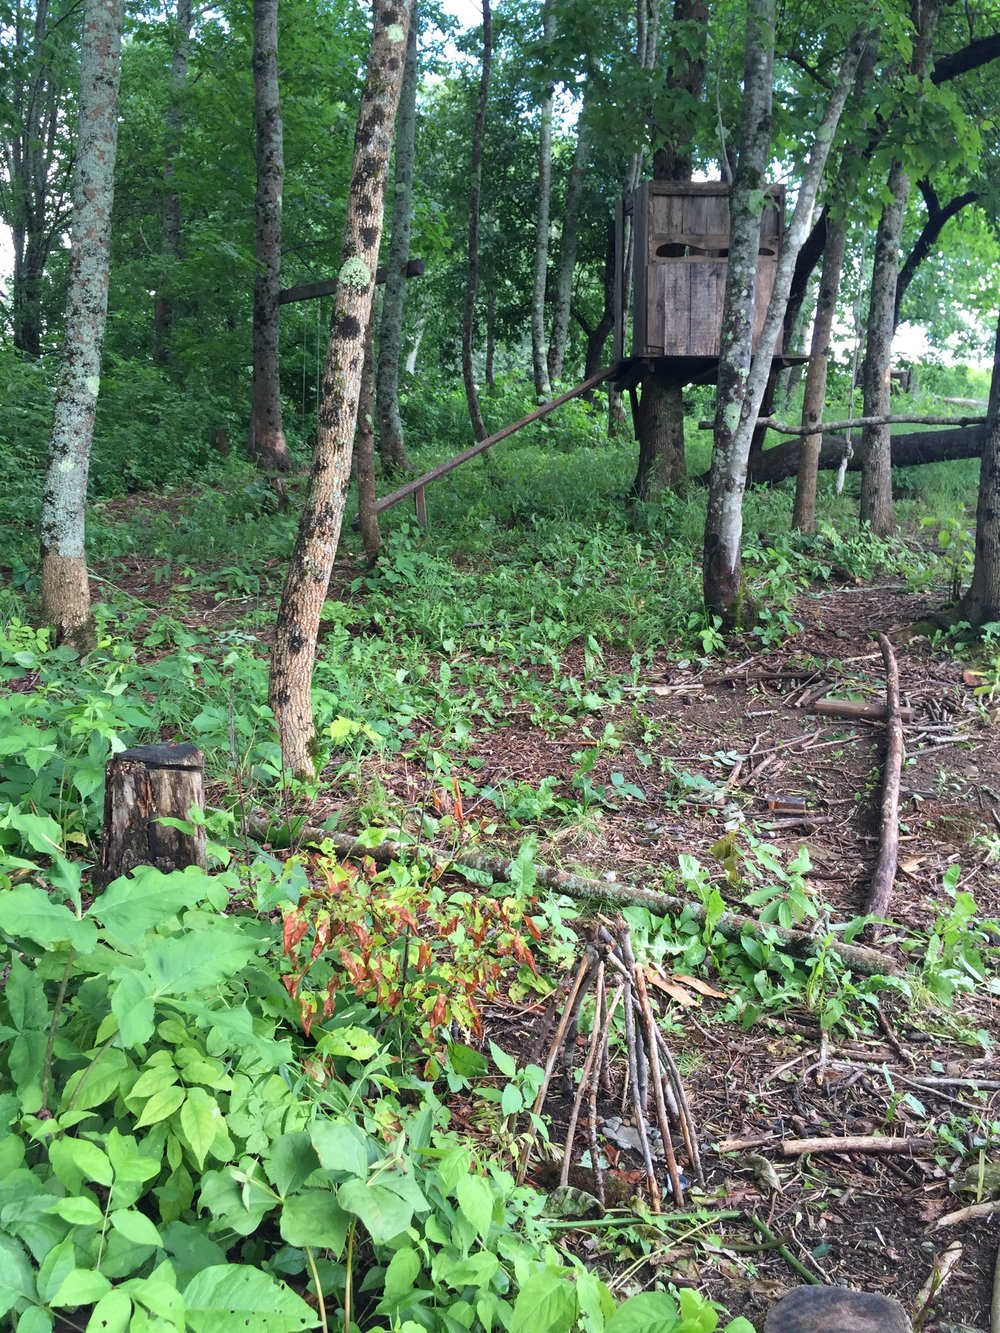 Jonah's fairy house (in the foreground) and swings and fort in the woods beside his family's house. He spends a lot of time in this place.